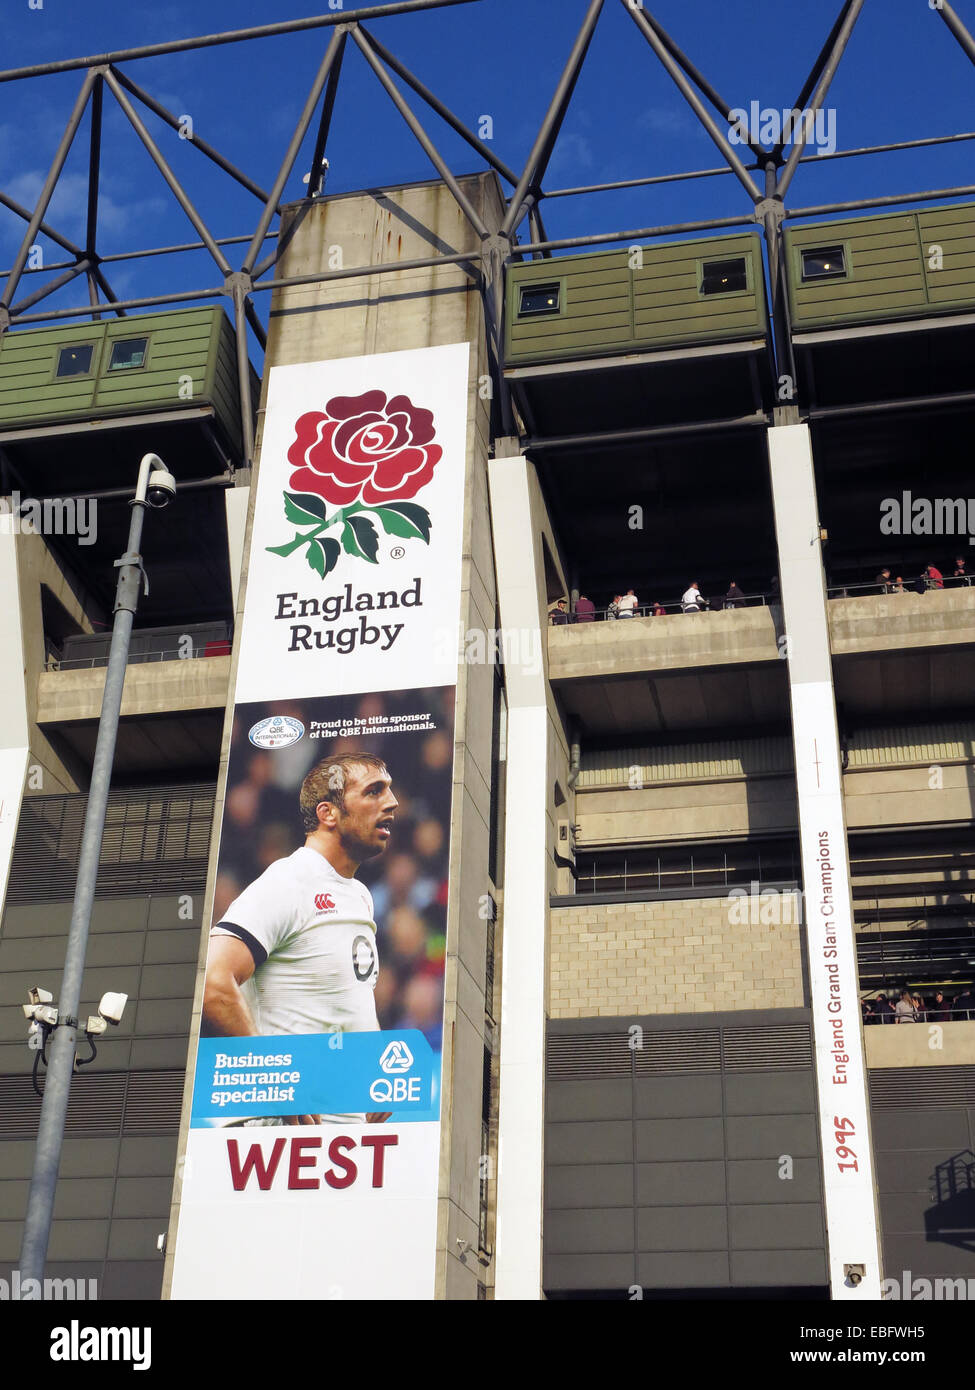 English Rugby at Twickenham West stand, London, England, UK - Stock Image